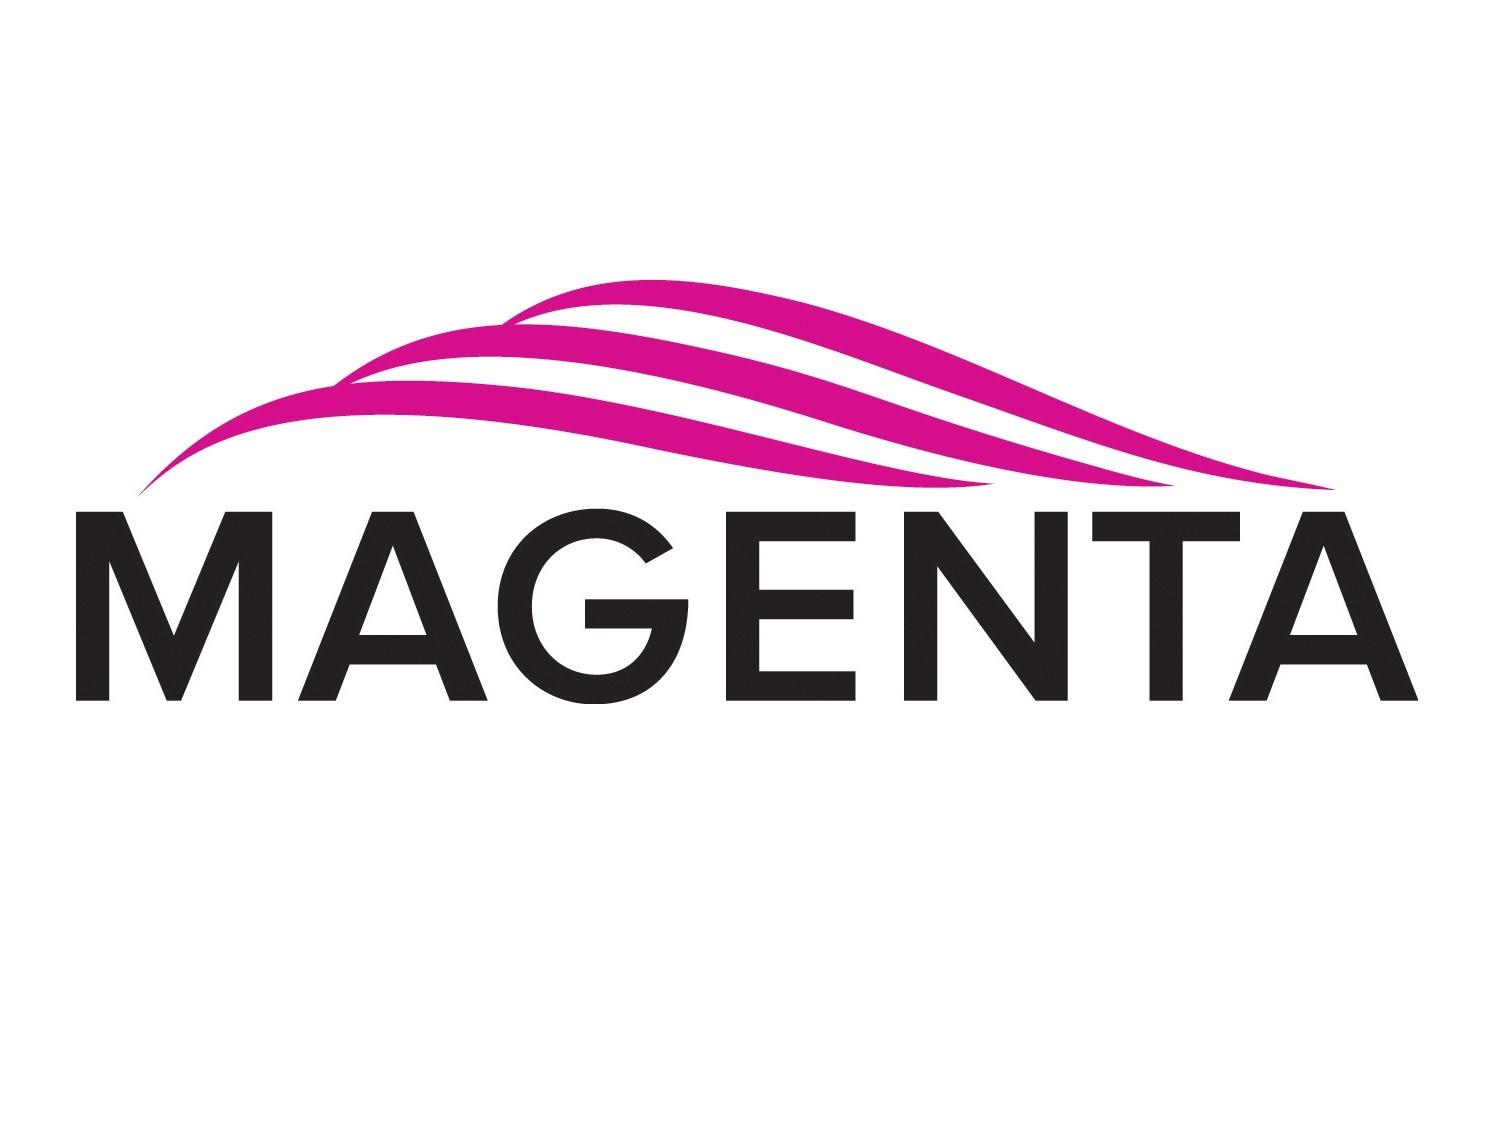 2390016-01 Additional Single Mode Fiber SFP Optic (4kM/13100ft) by Magenta Research